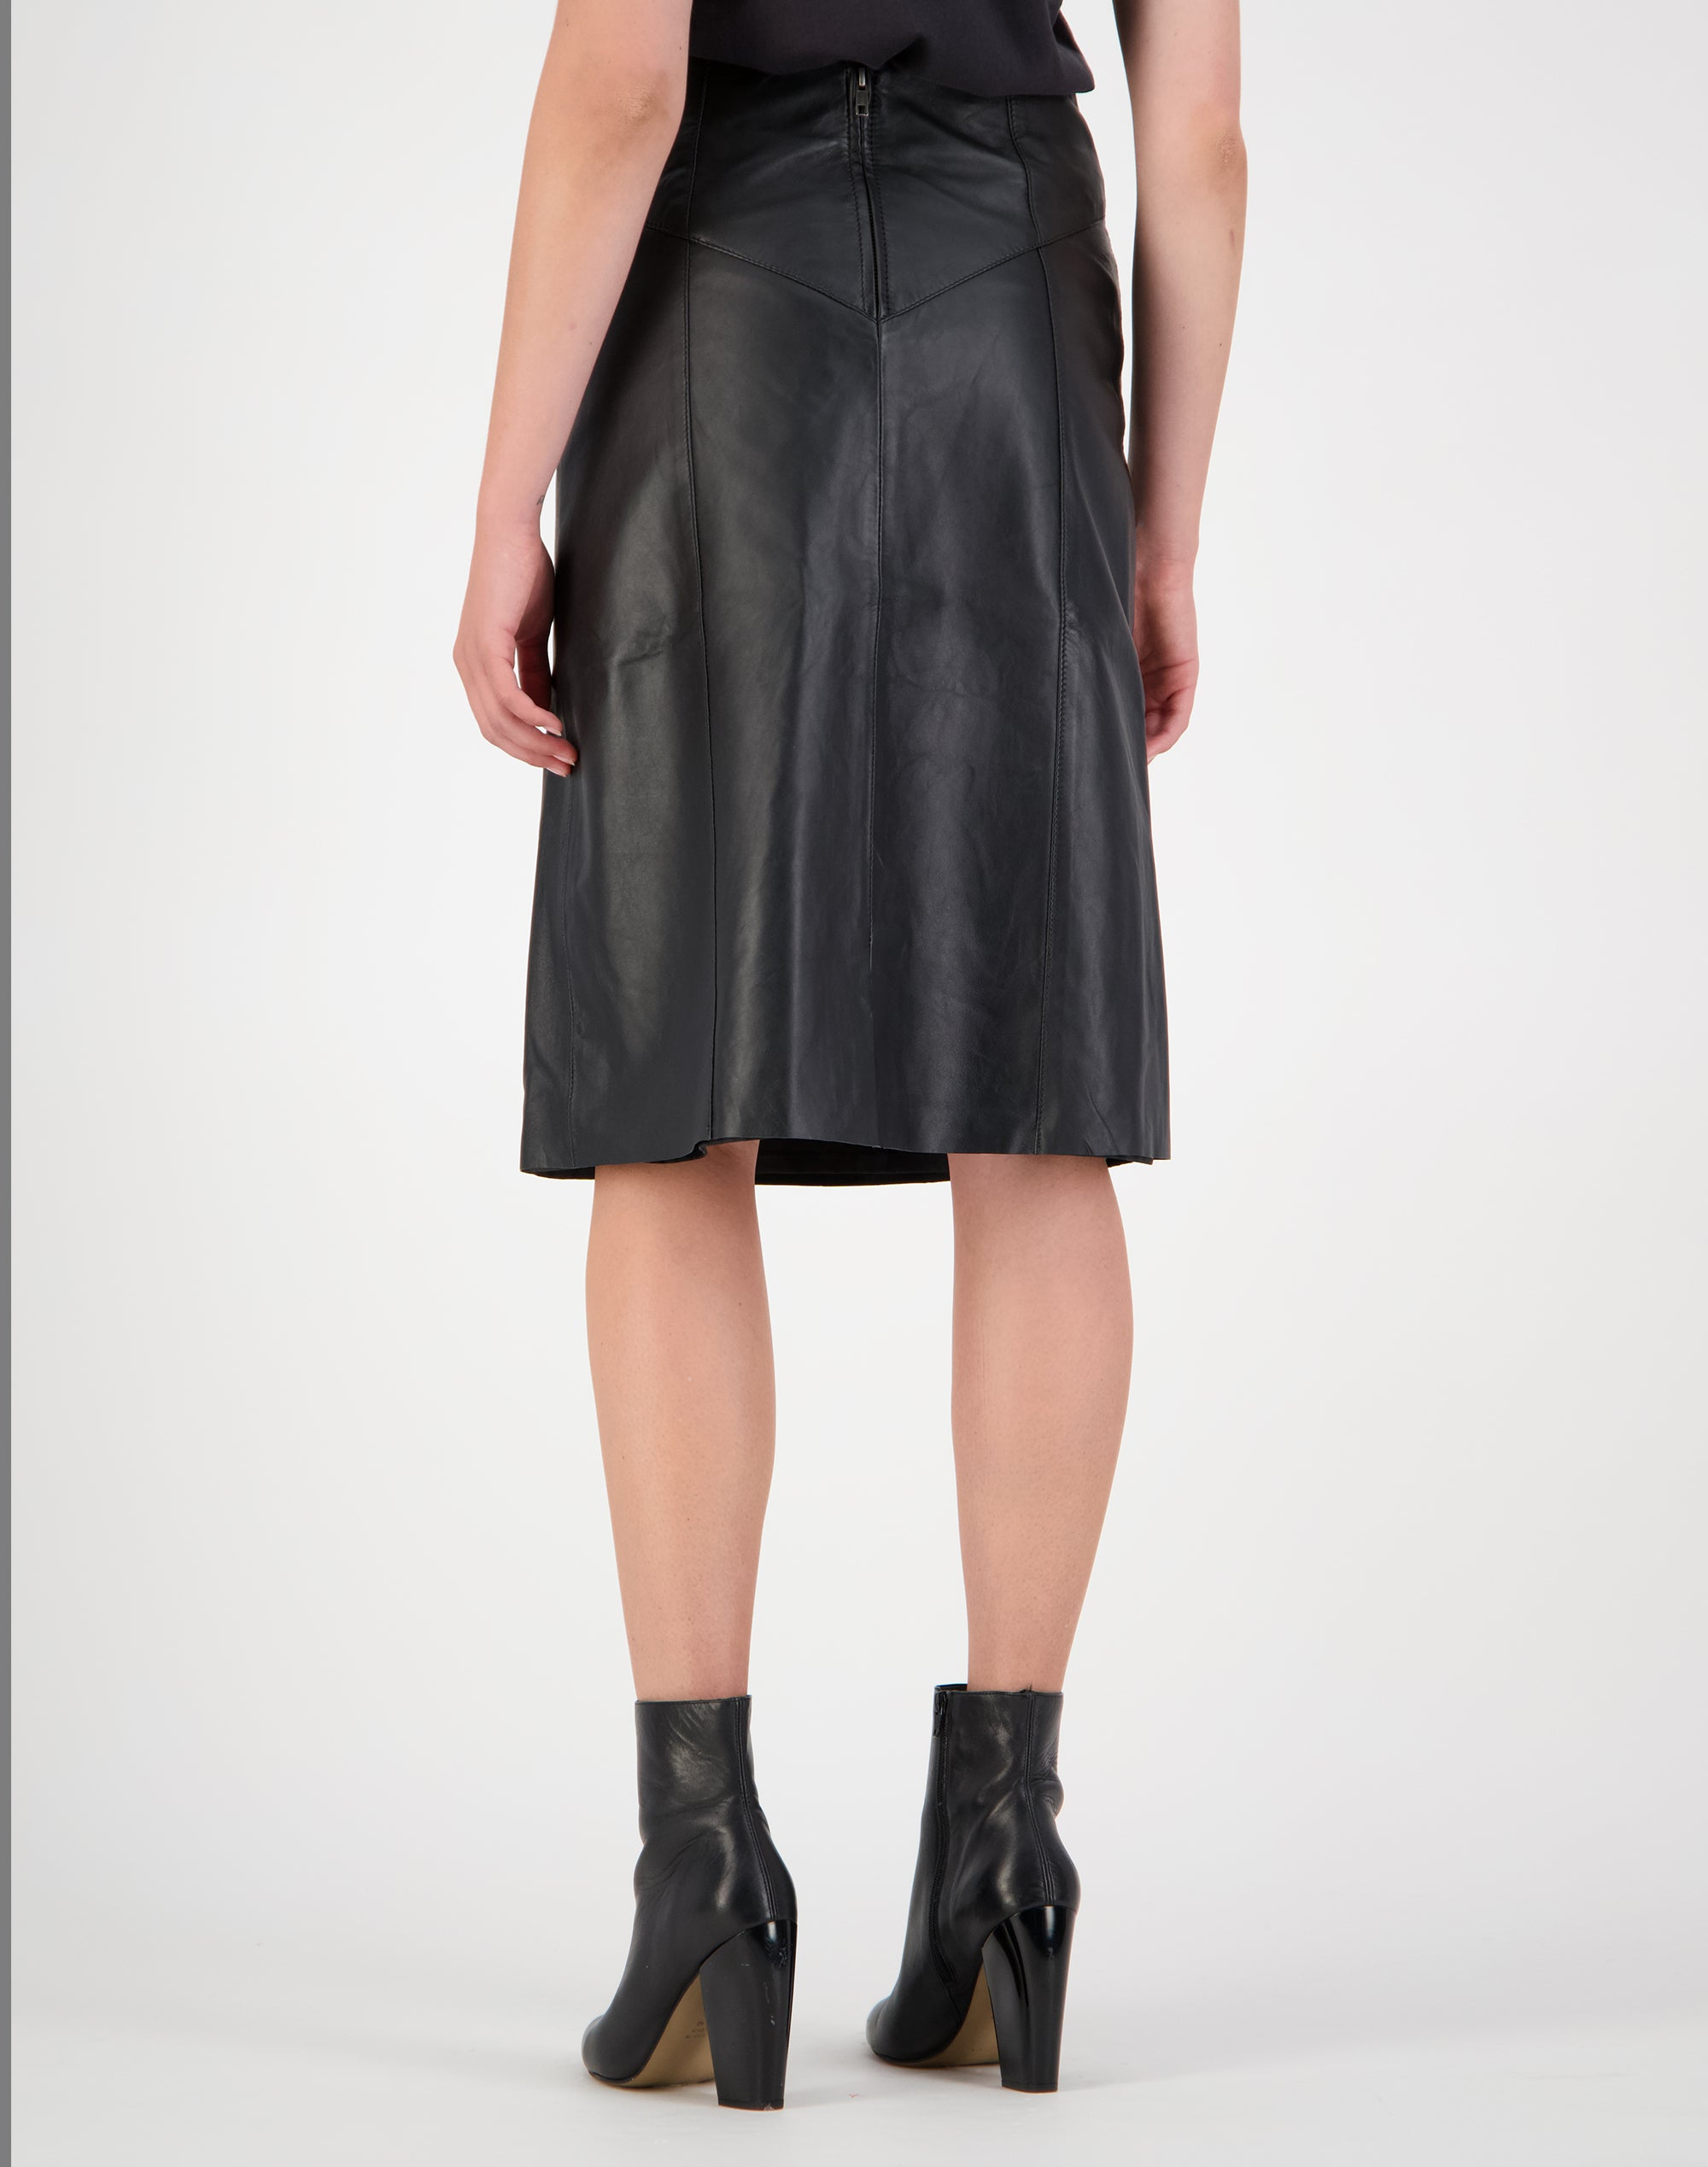 Bowie Leather Skirt